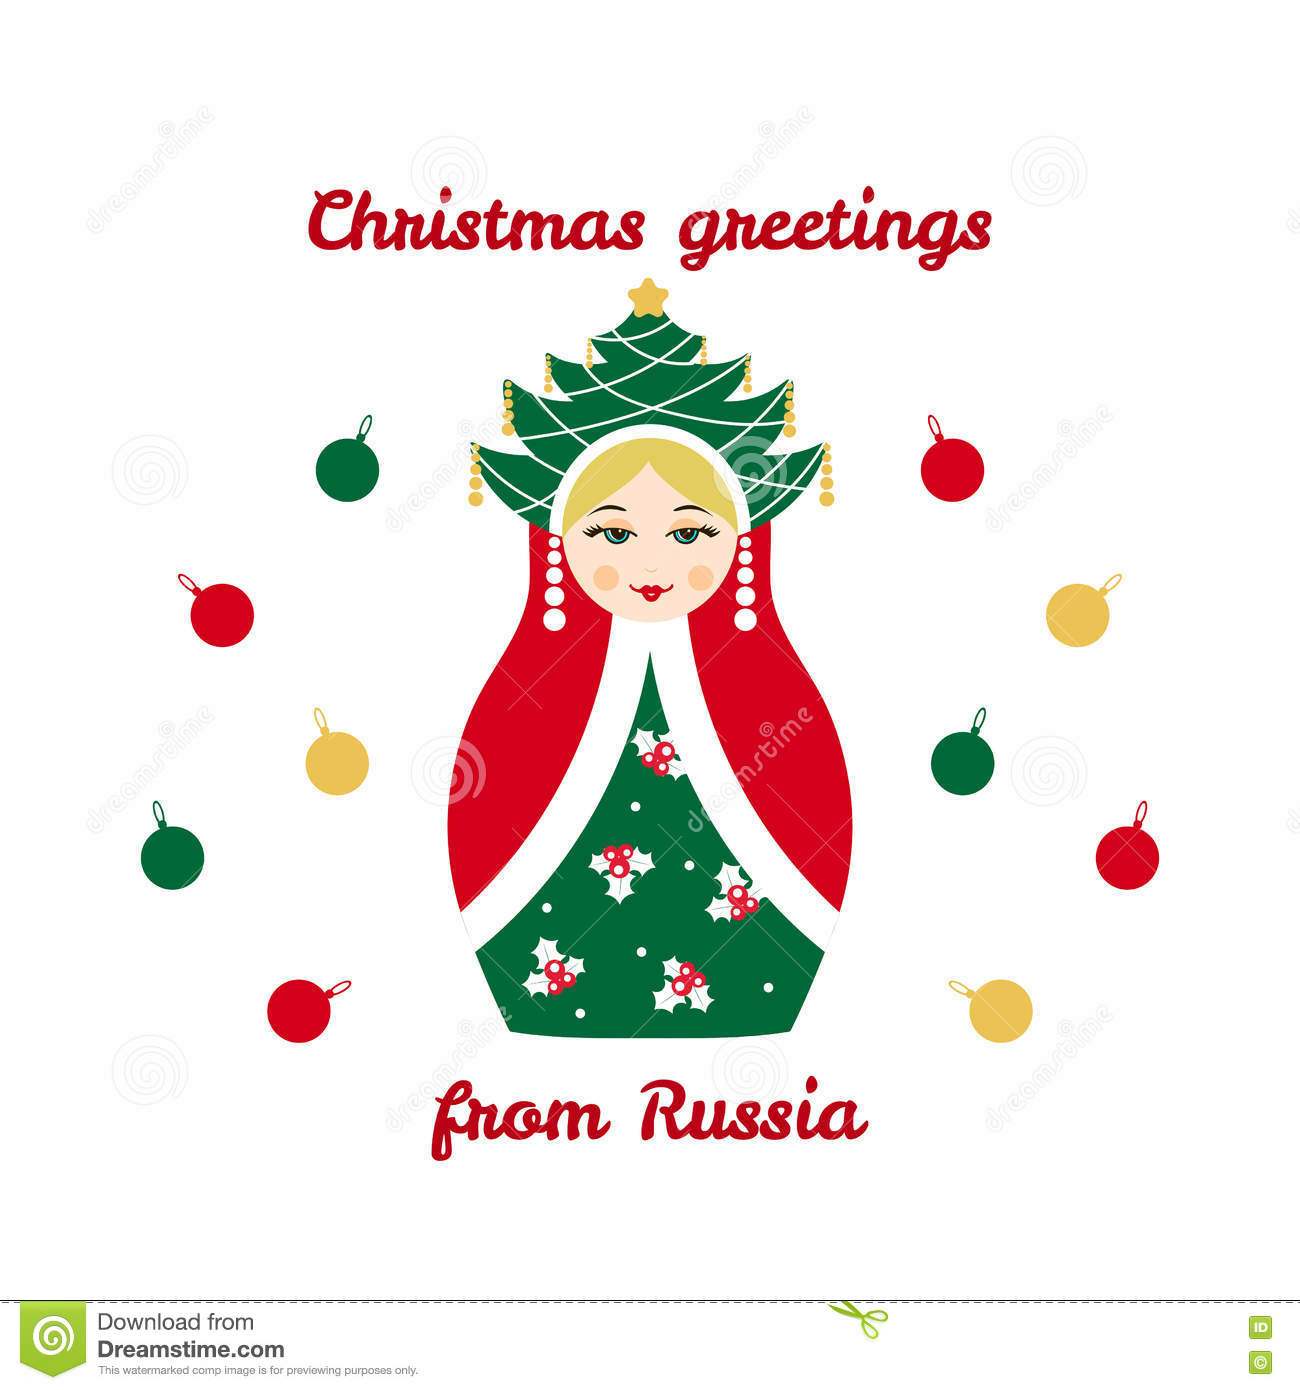 Christmas Greetings From Russia Card With Russian